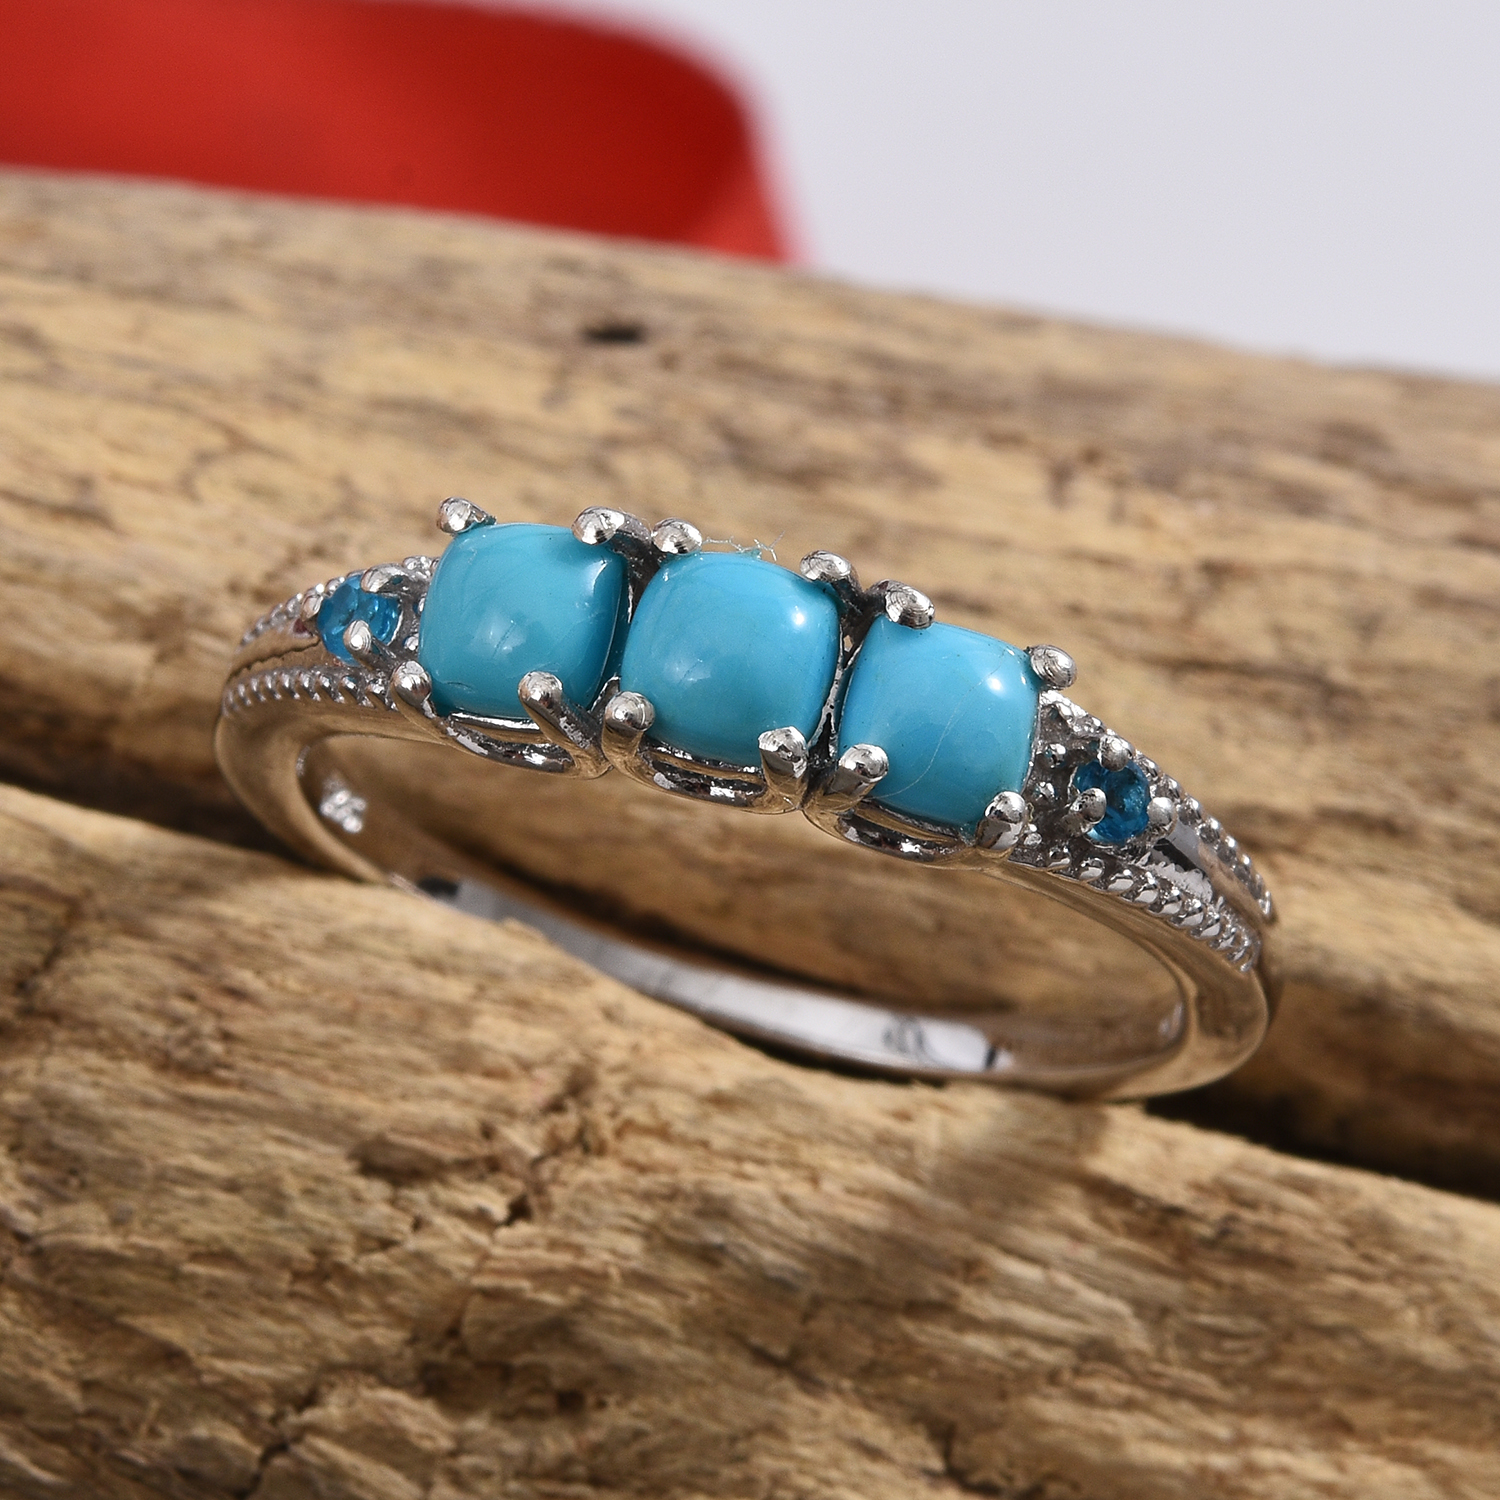 Arizona Sleeping Beauty Turquoise 3 Stone Ring in Platinum Over Sterling Silver (Size 5.0) 0.90 ctw